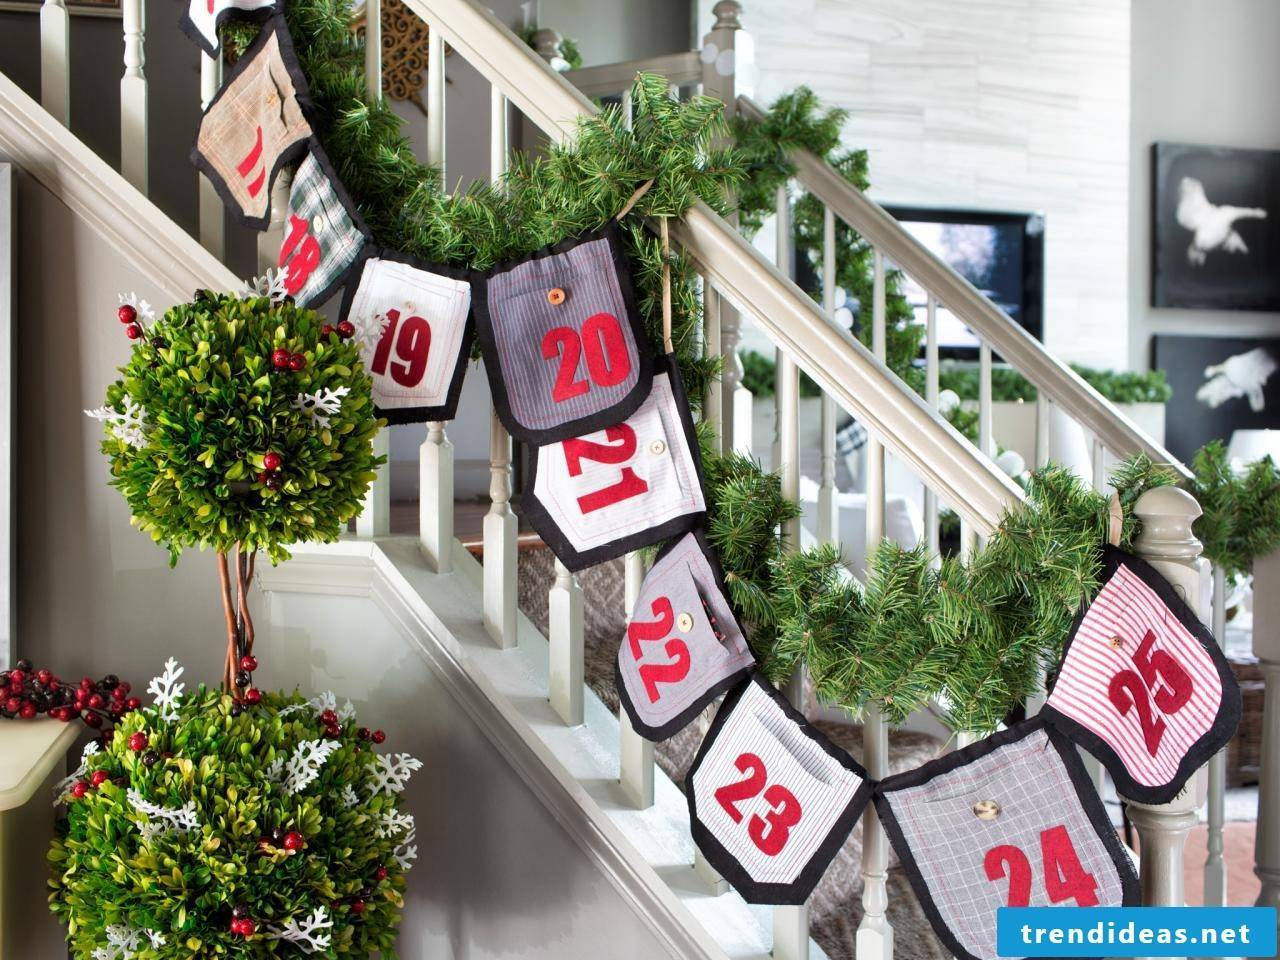 Sewing advent calendars - instructions and ideas